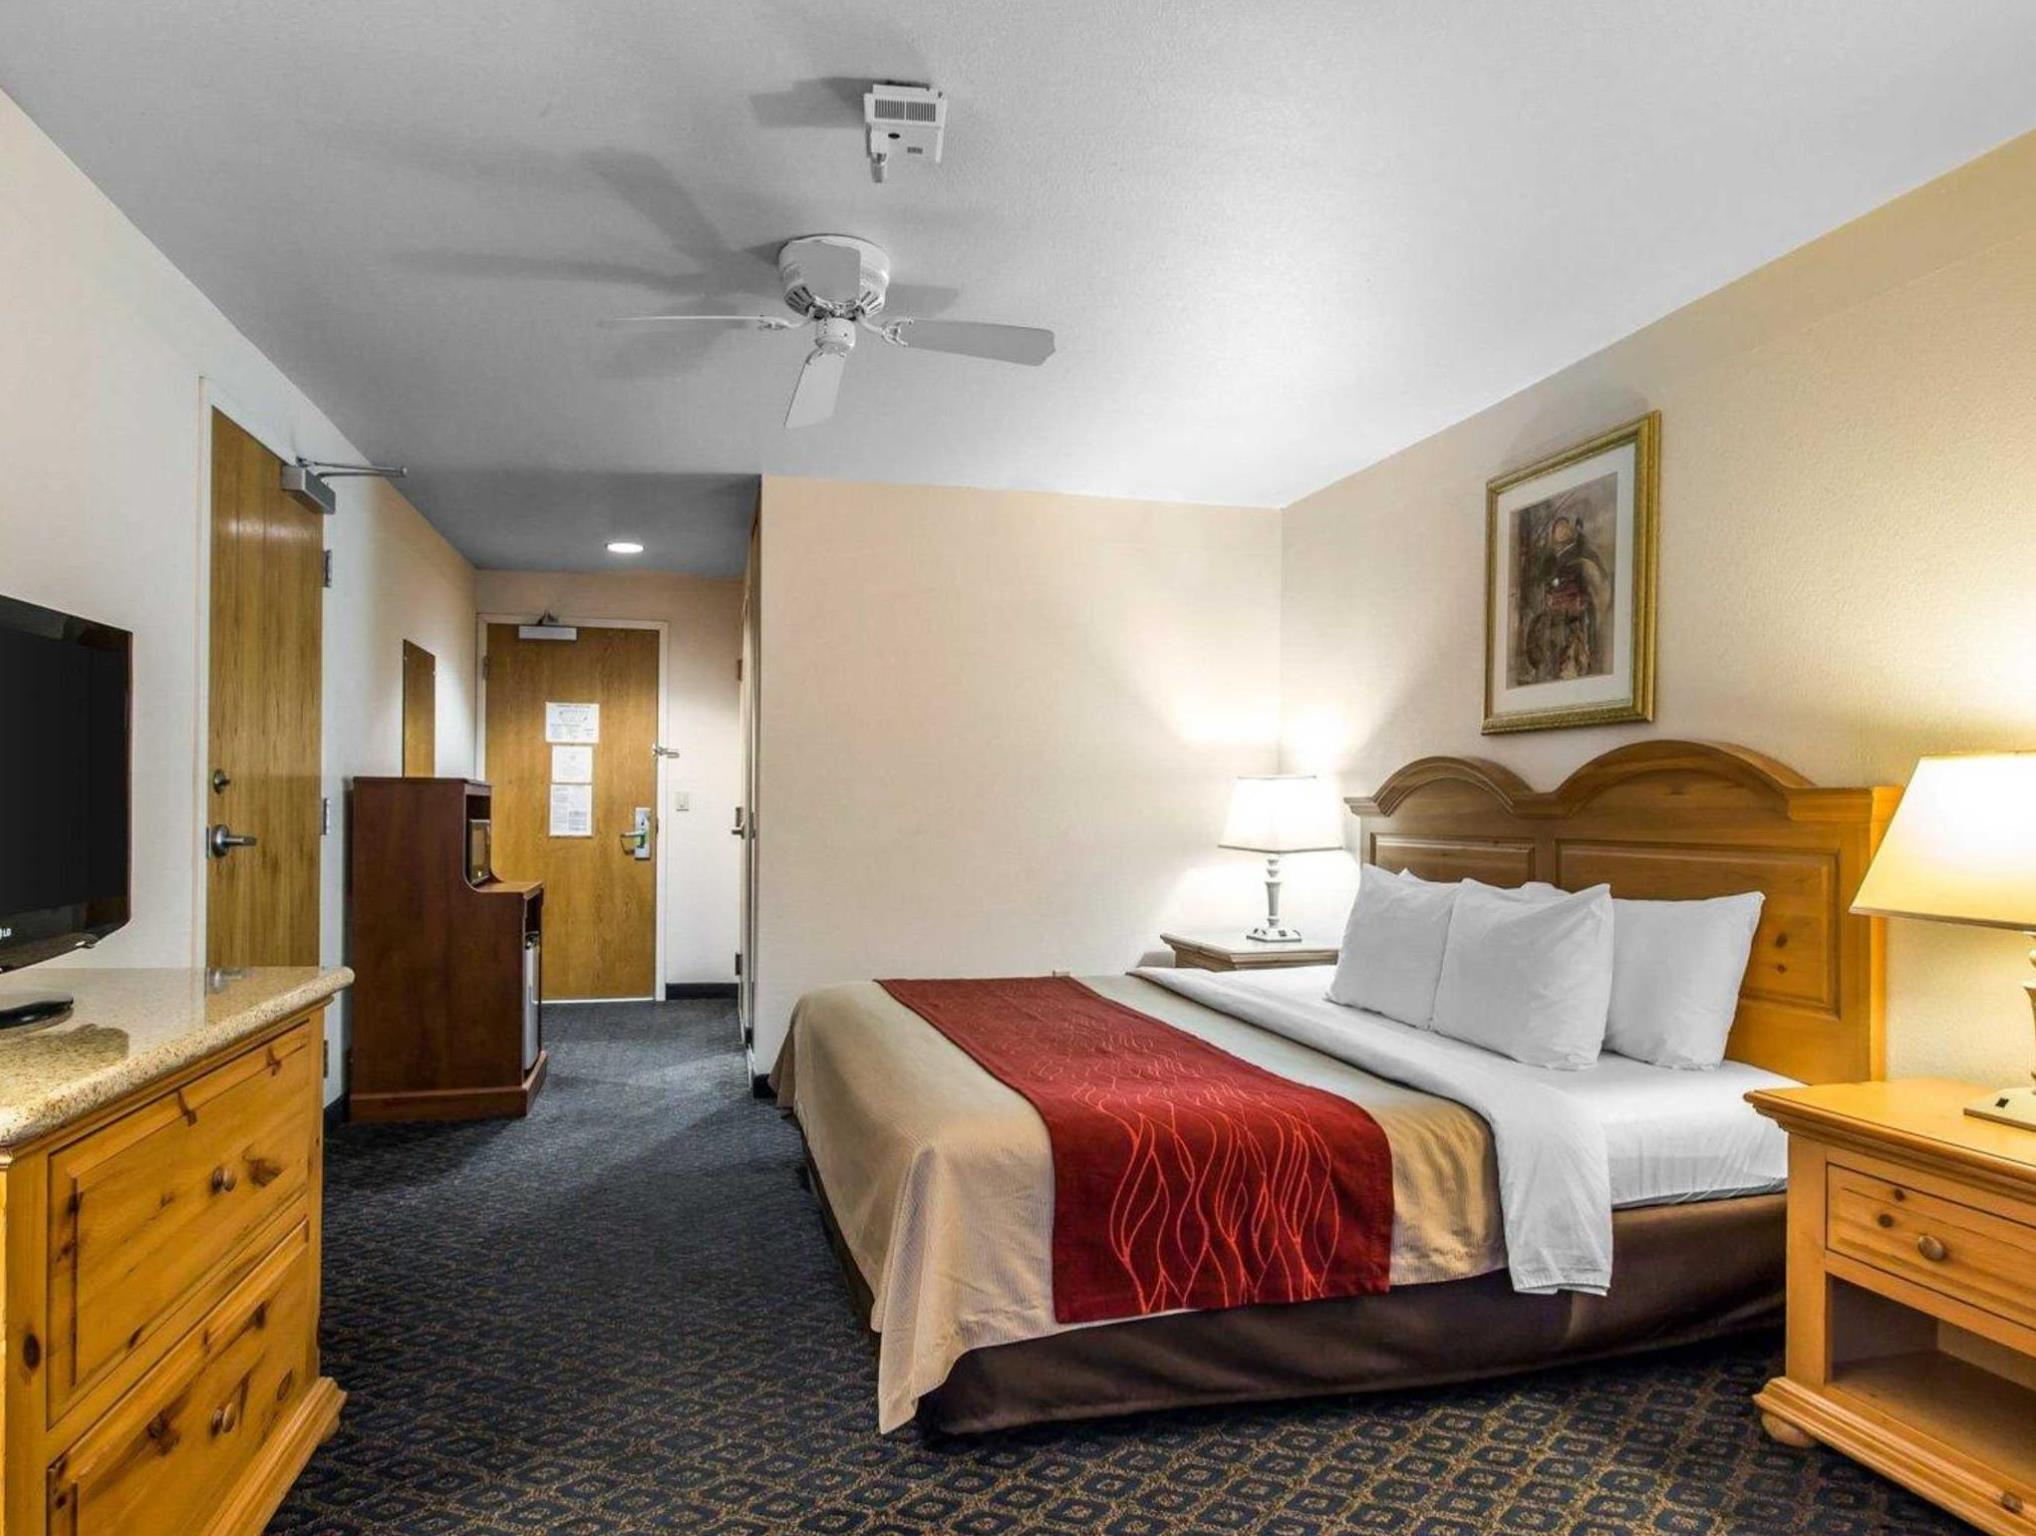 Price Comfort Inn & Suites Sequoia Kings Canyon